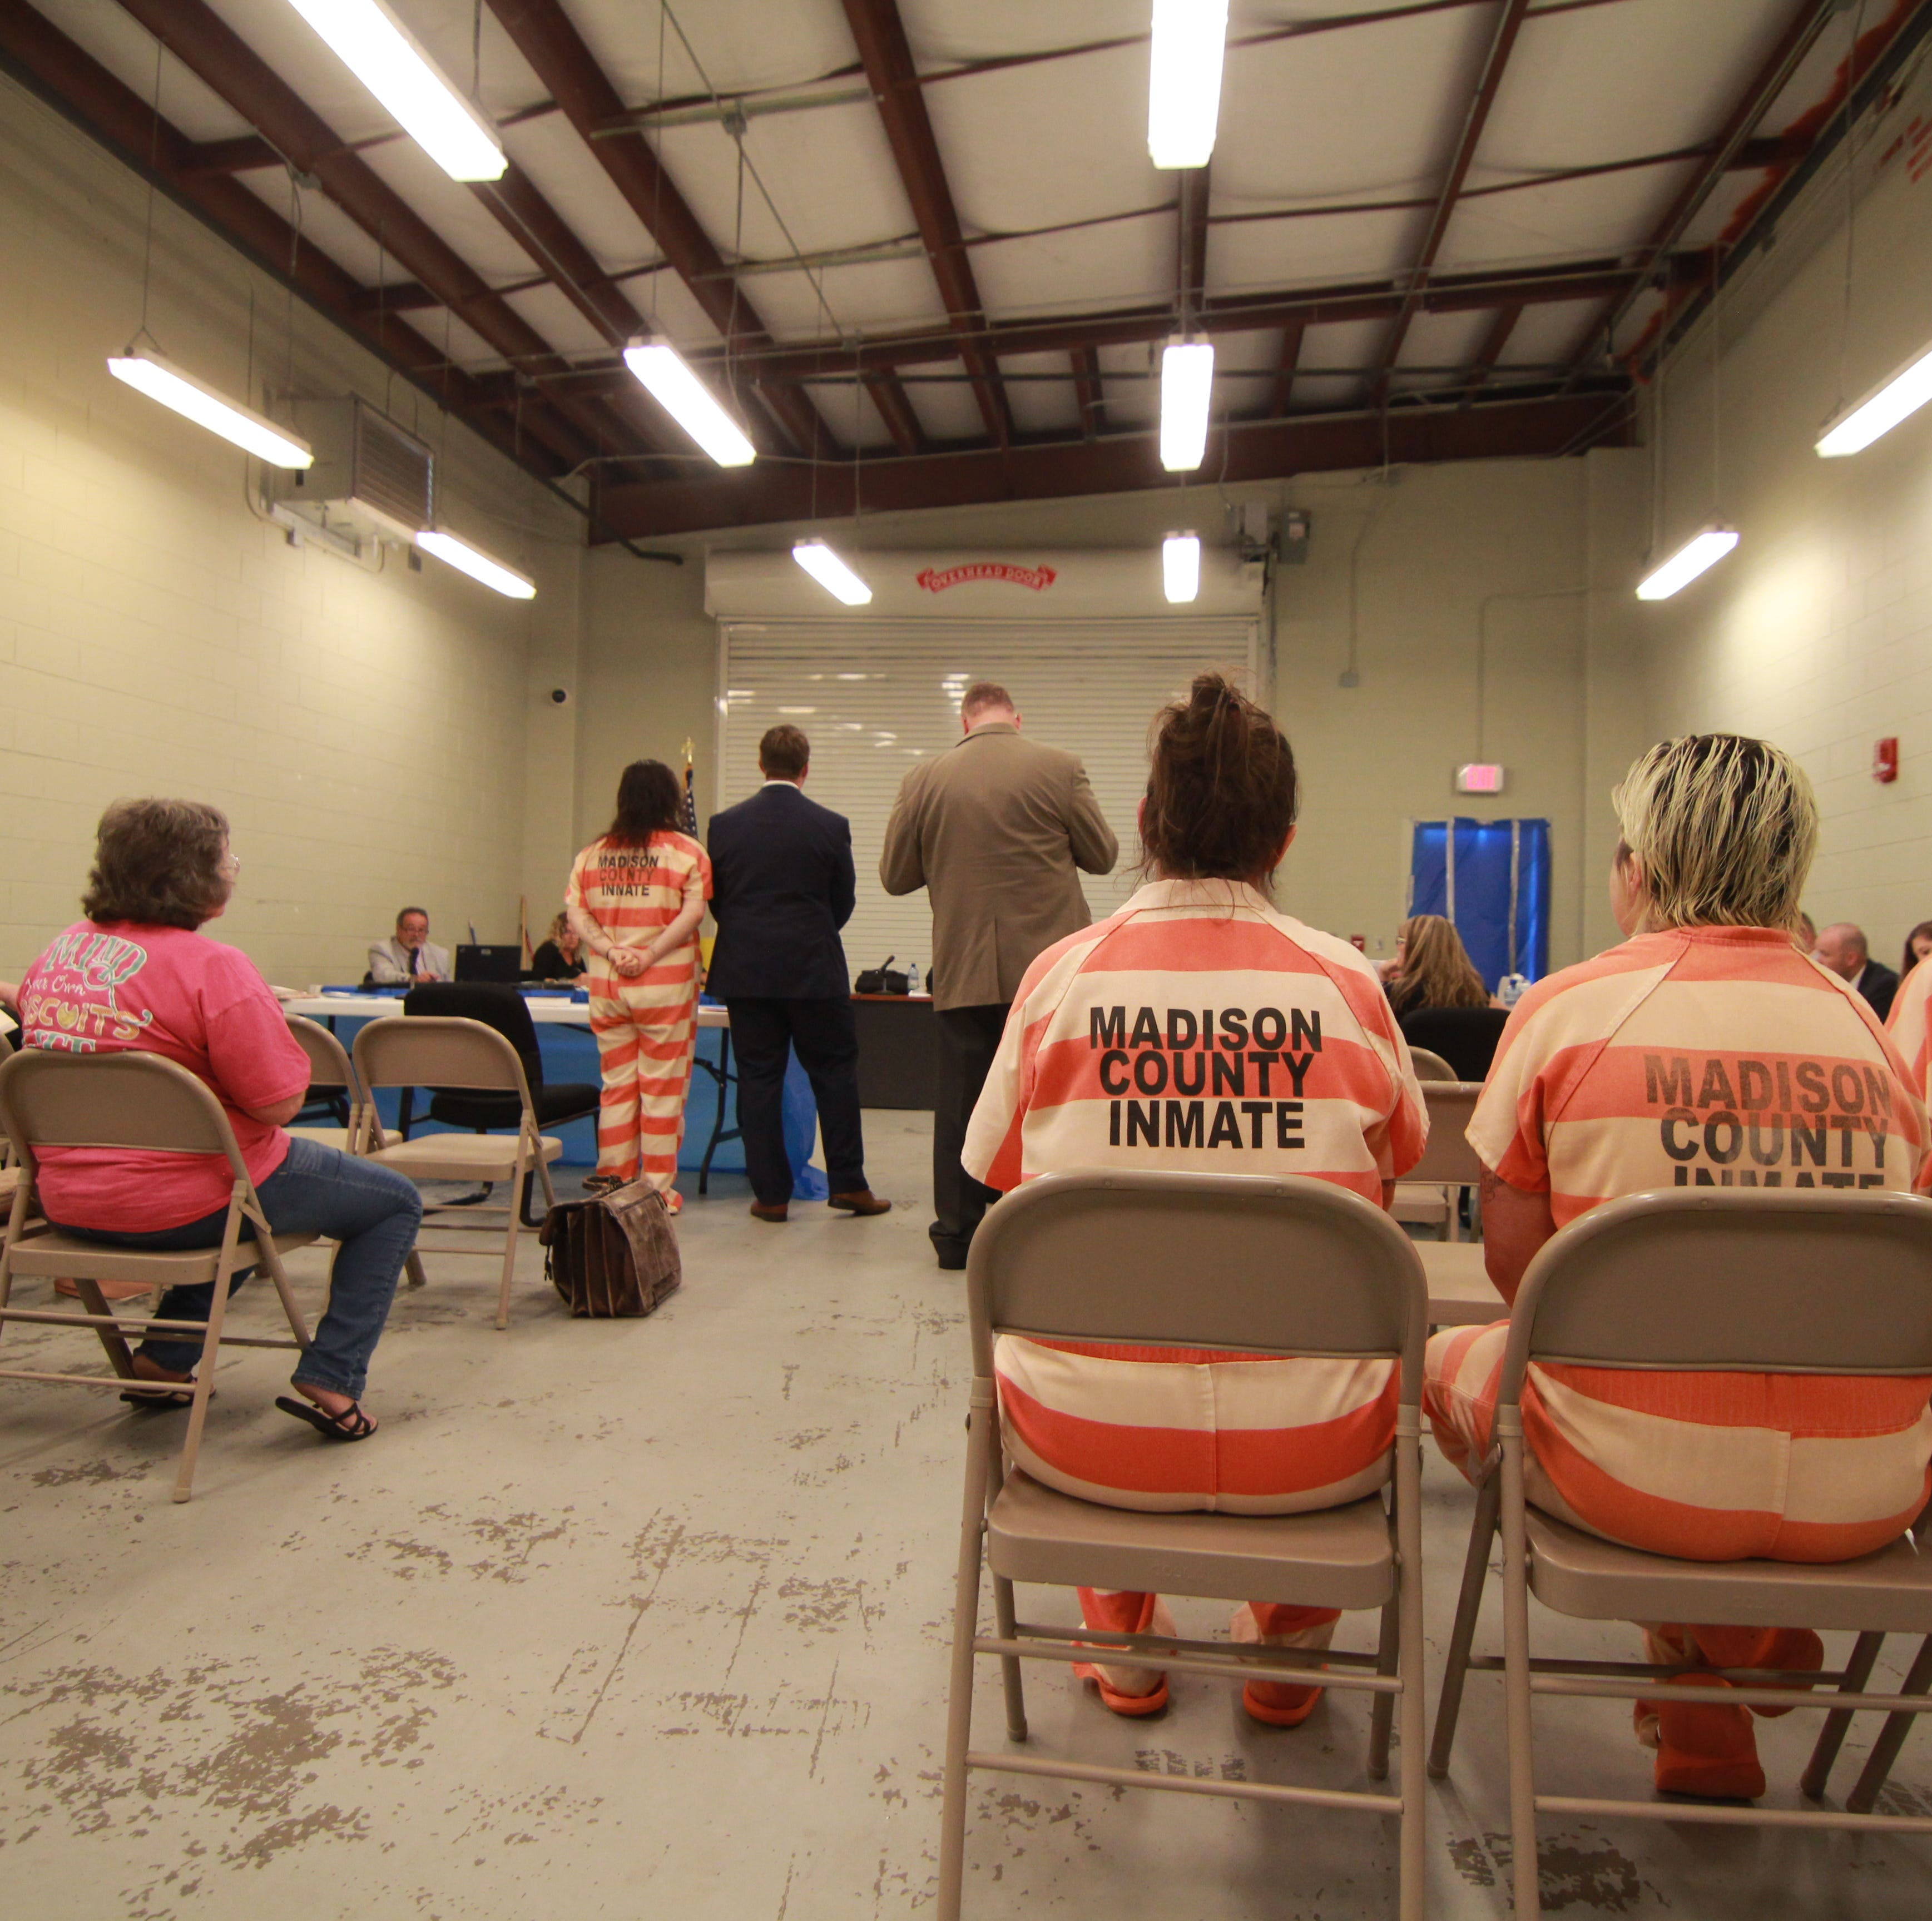 Full docket sends court cases to jail garage in Madison County